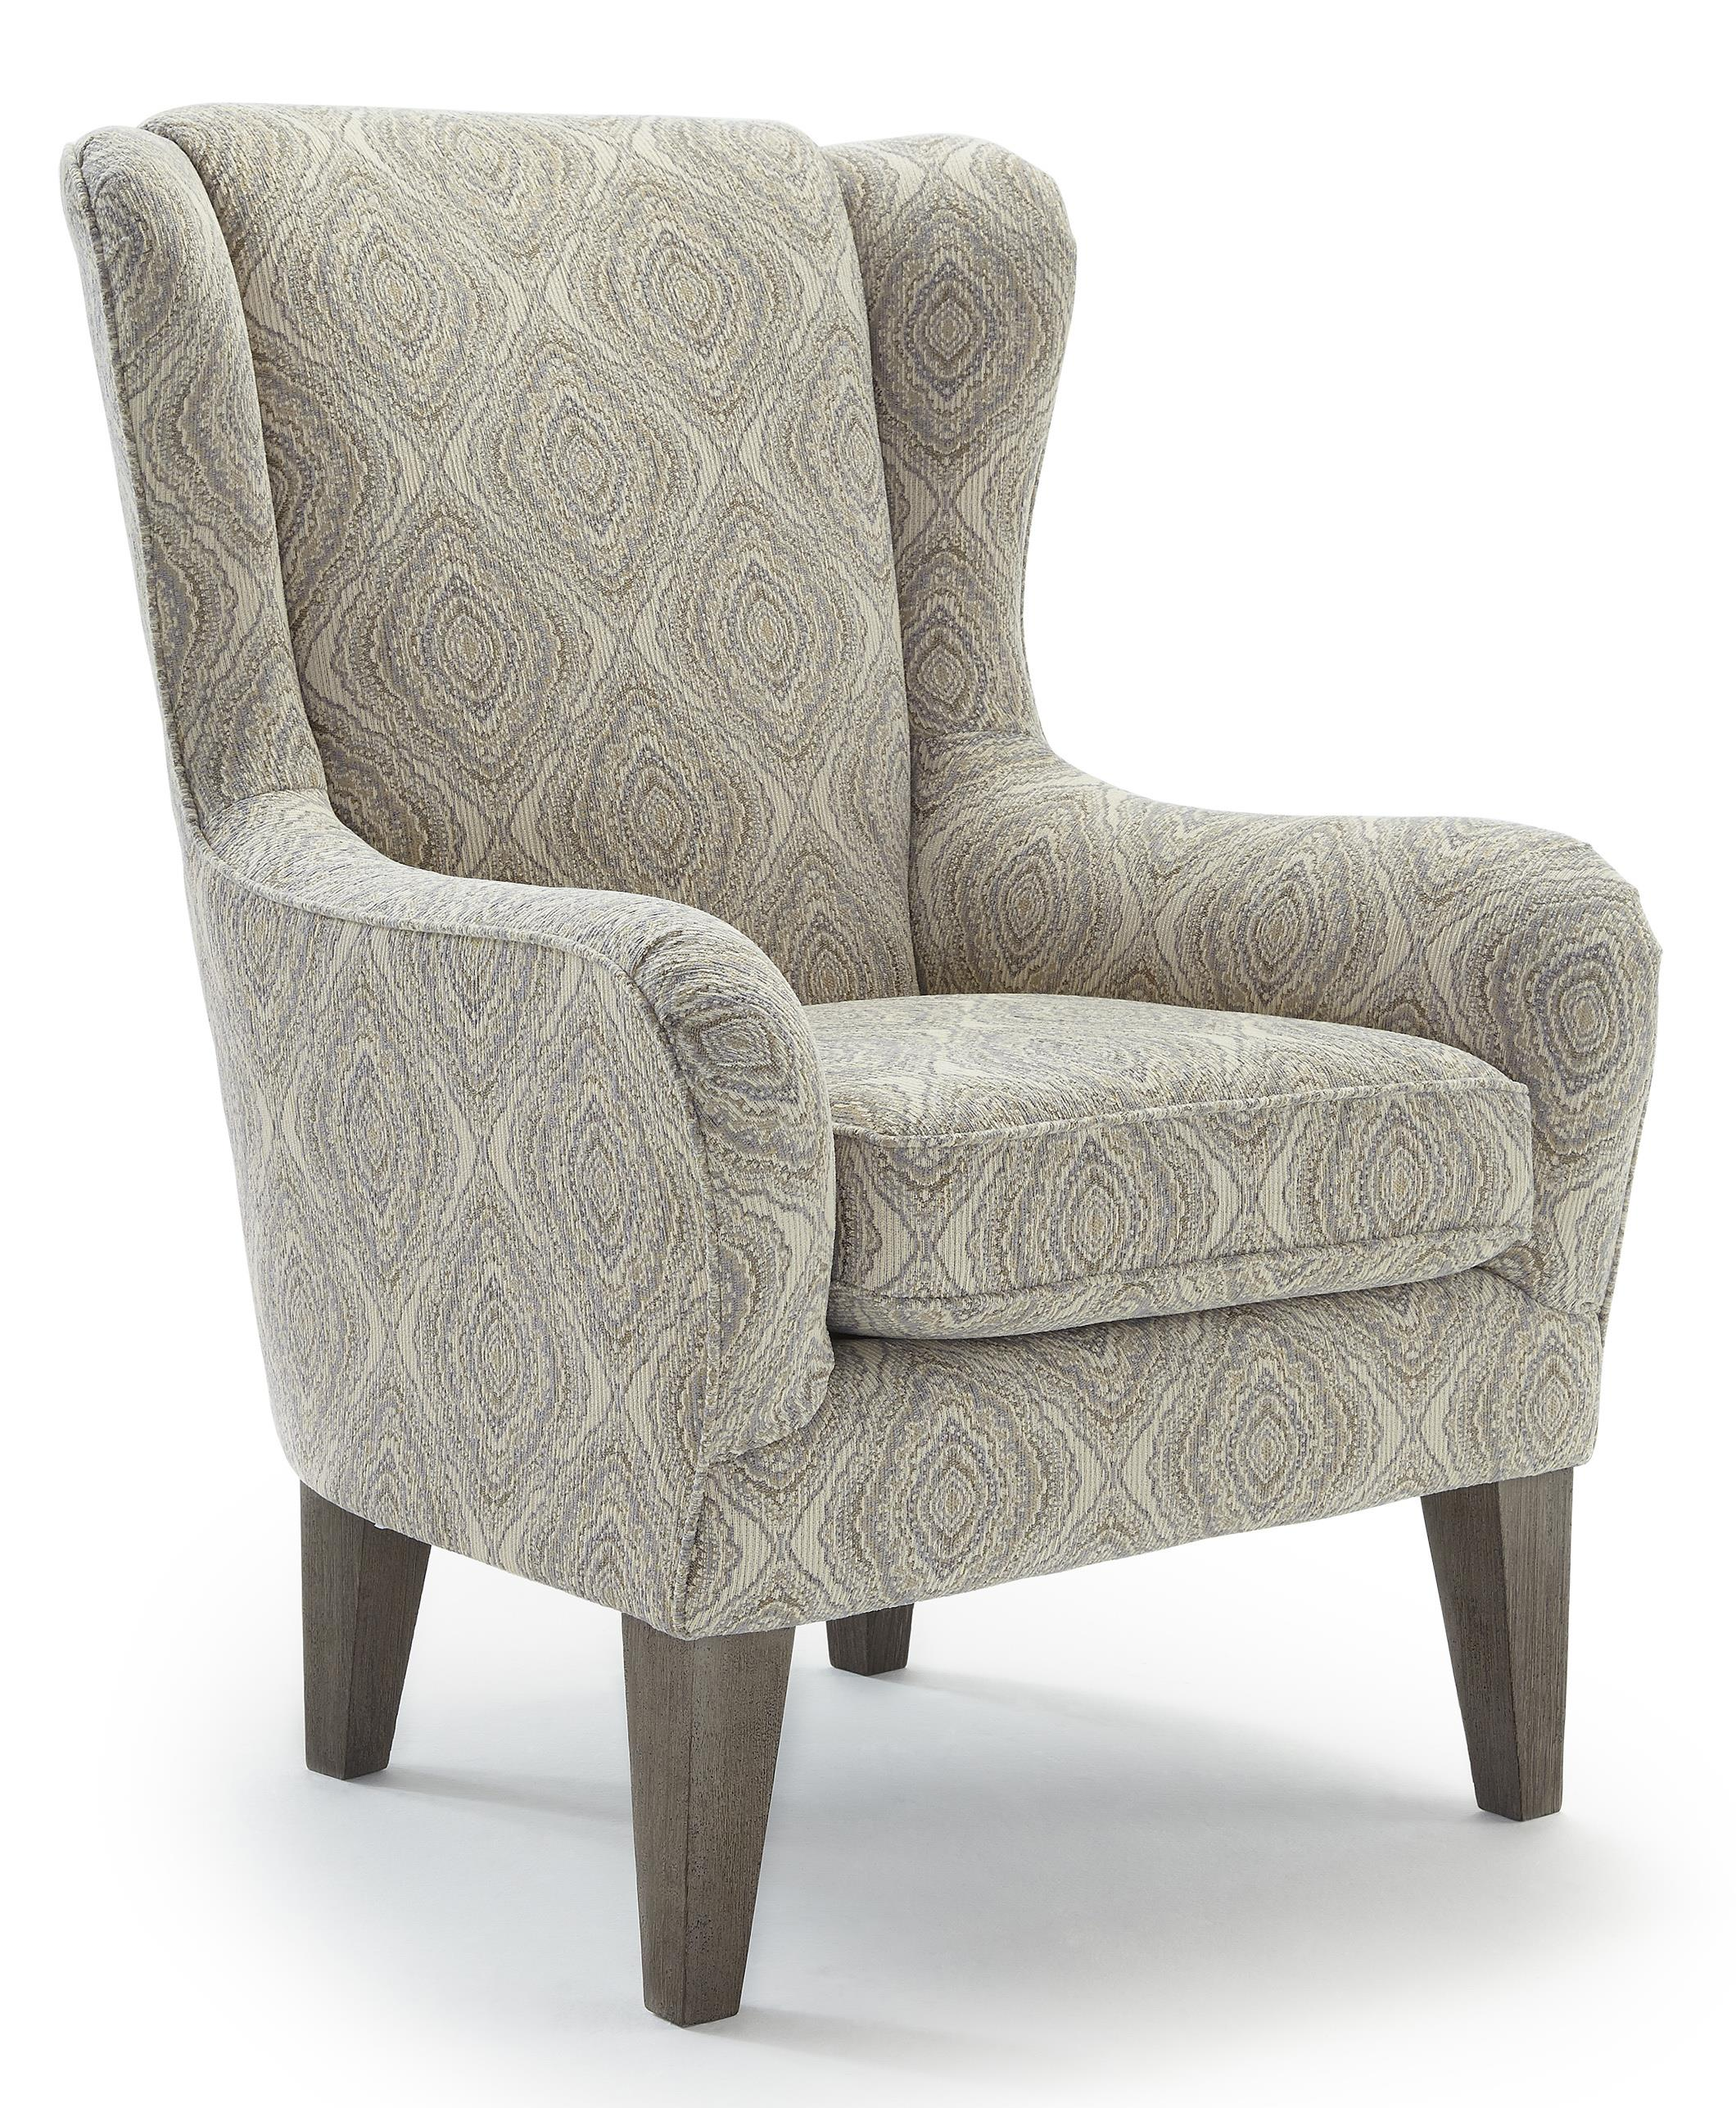 Best Home Furnishings Chairs - Club Lorette Club Chair - Item Number: 7180-34569